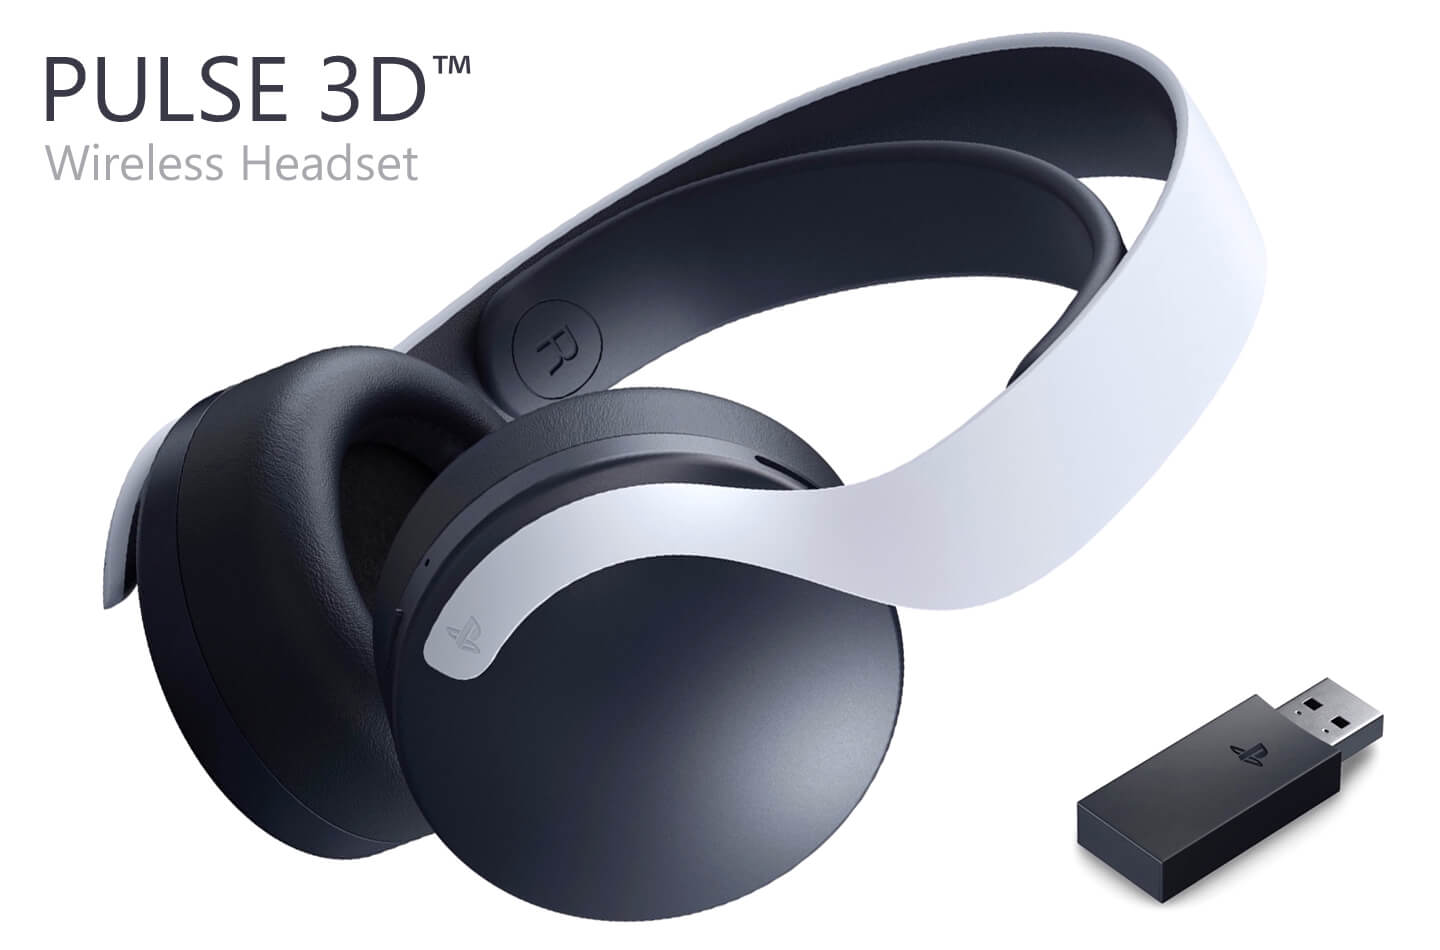 PlayStation 5 accessoires Pulse 3D headset